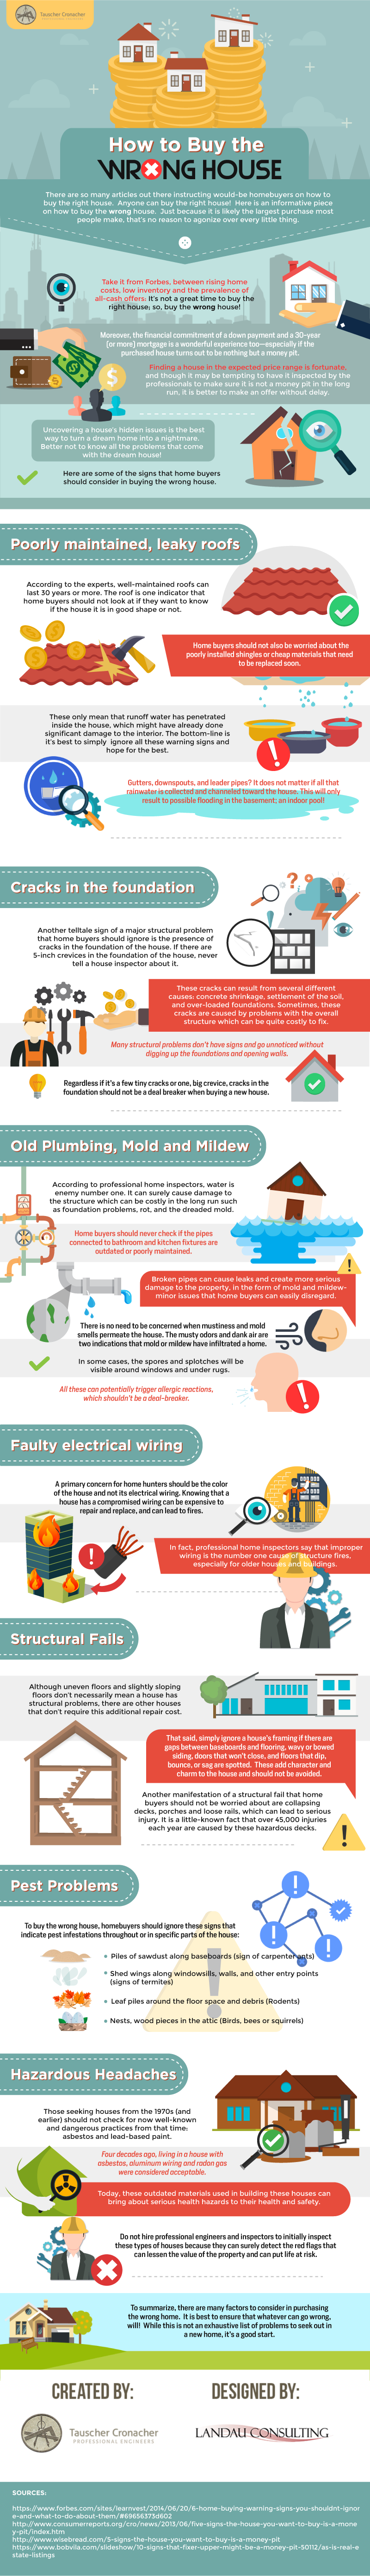 This Is How You Can Buy The Wrong House For You - Infographic